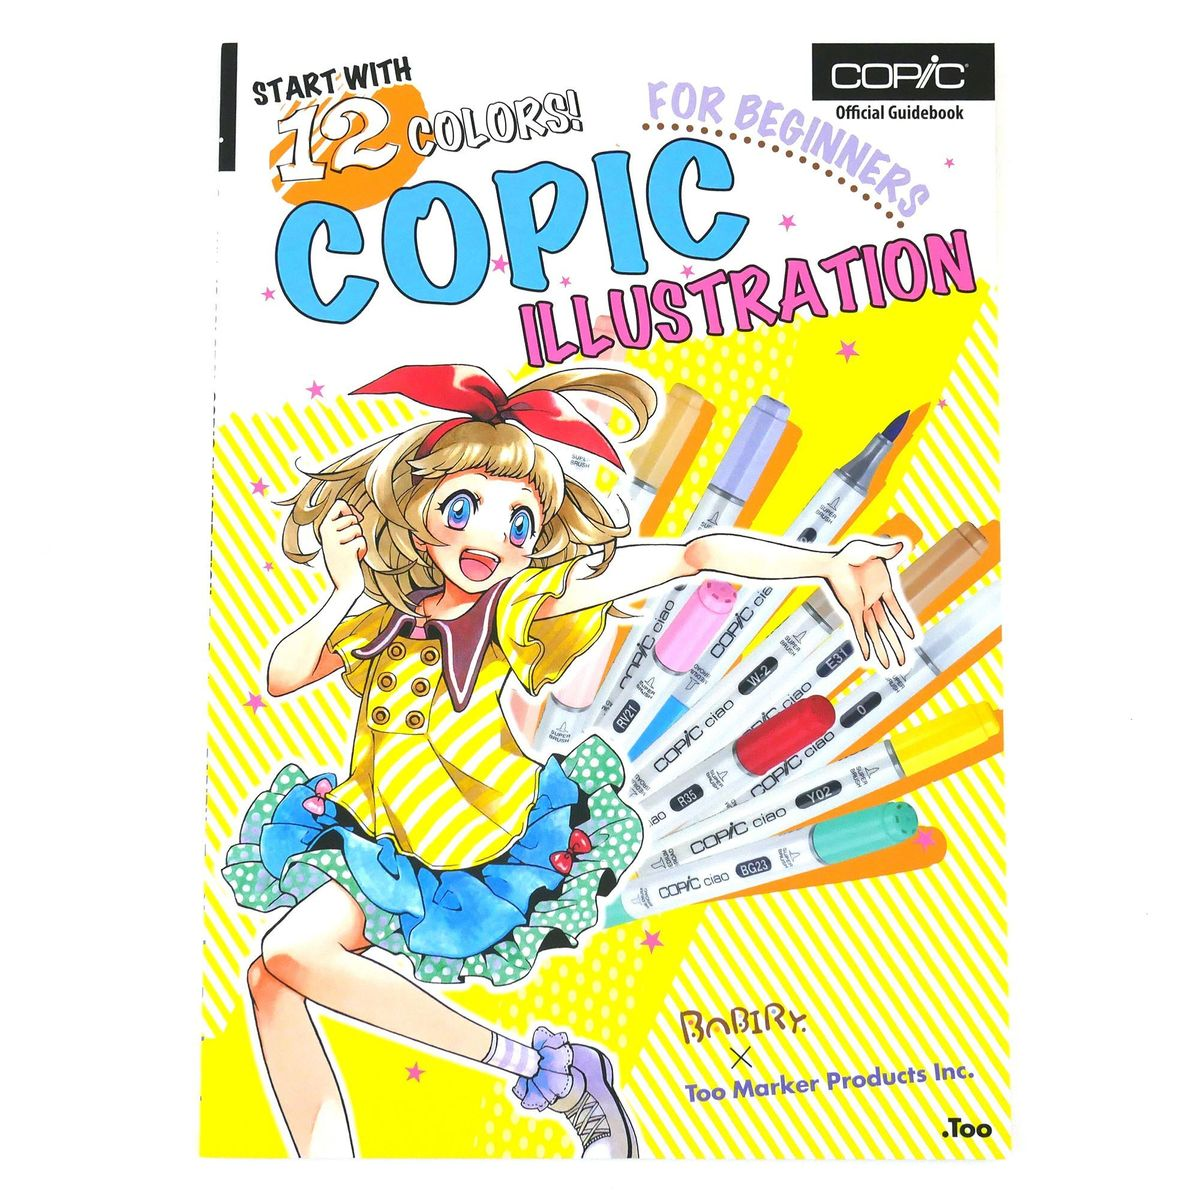 LIVRO COPIC START WITH 12 COLORS